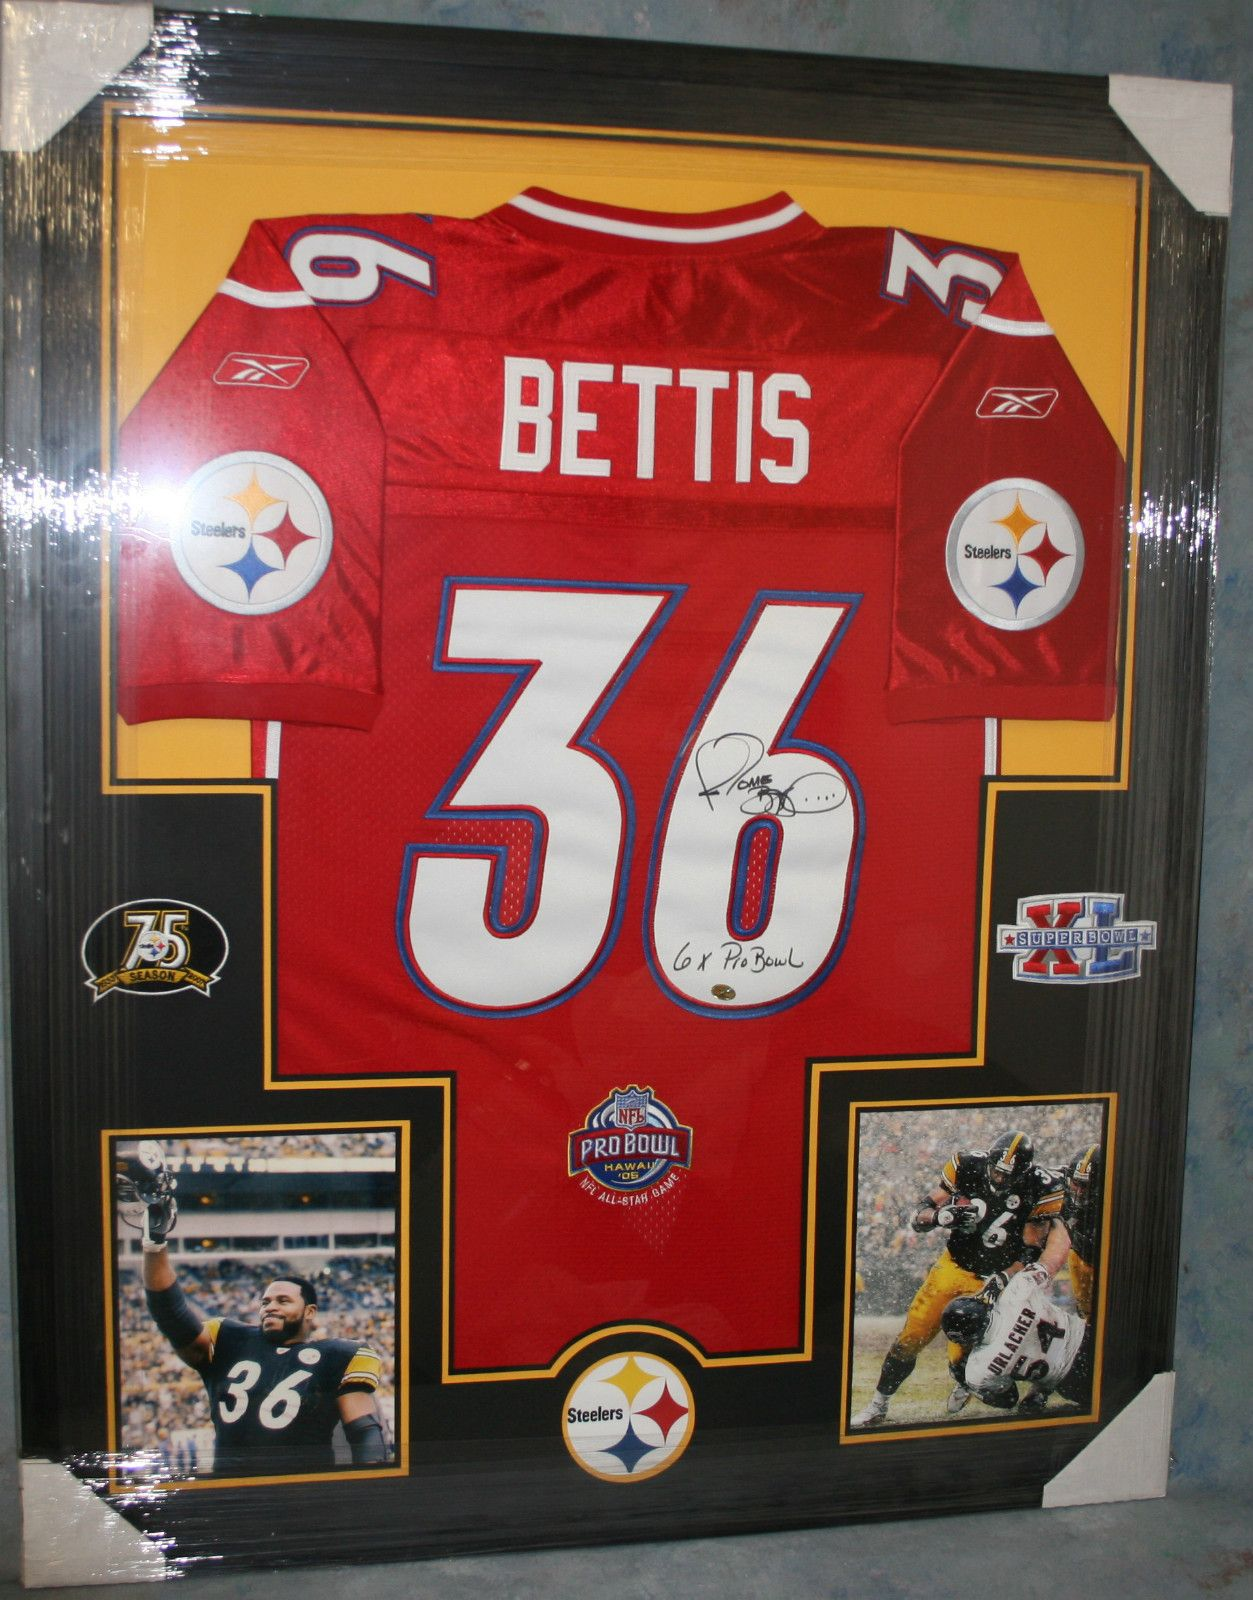 45d49abf4 JEROME BETTIS Framed Pittsburgh Steelers PRO BOWL Jersey 6x Pro Bowl BUS  Holo